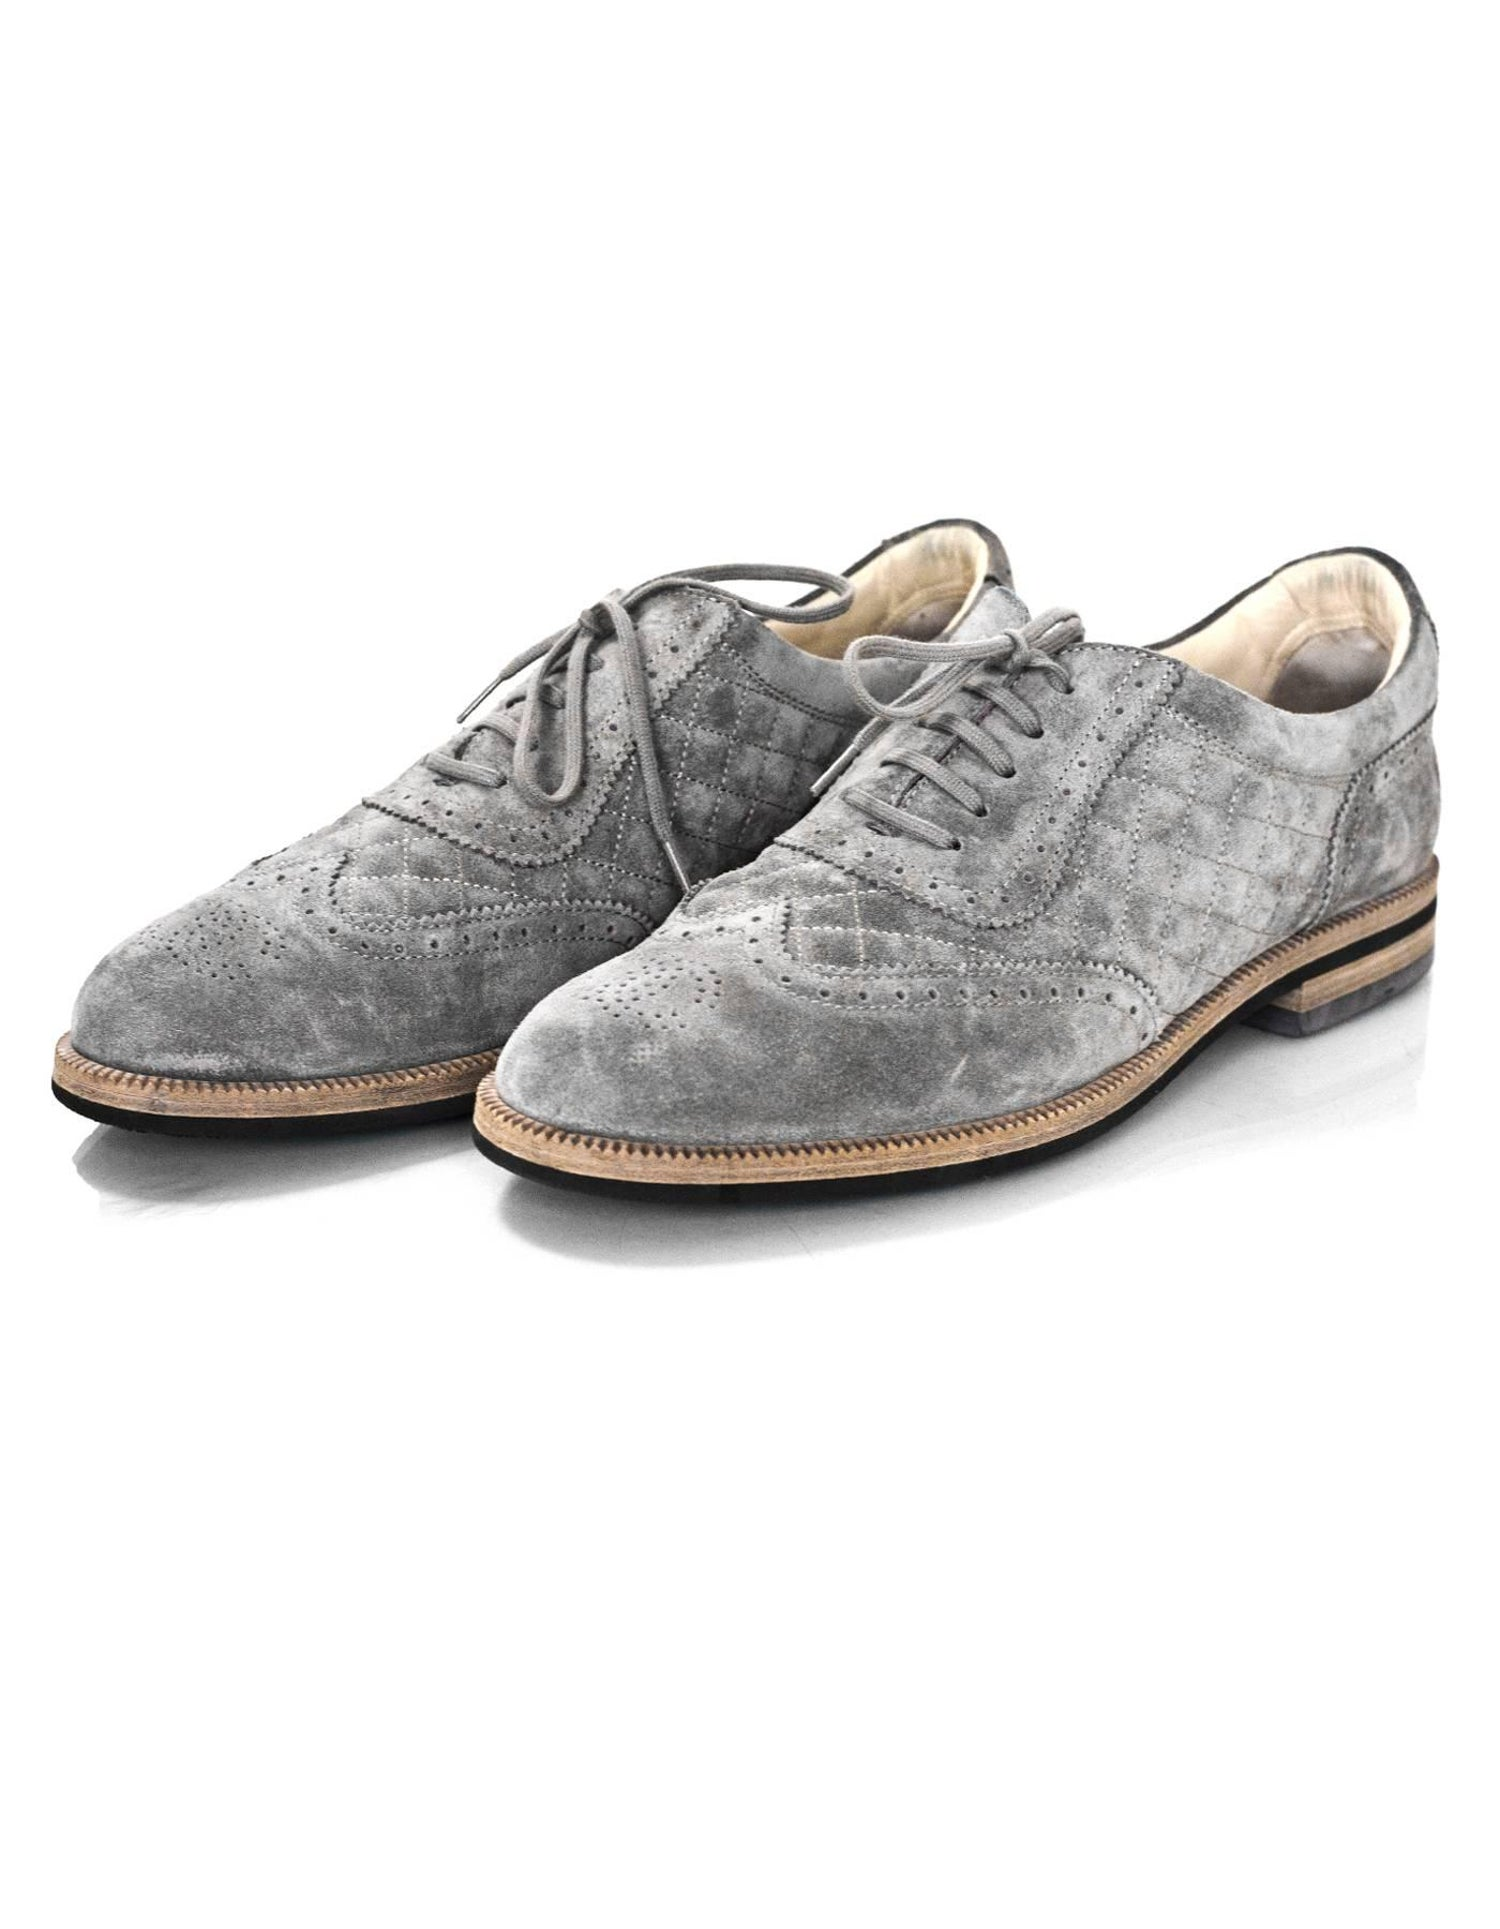 f554449a4699c Chanel Grey Perforated Quilted Suede Oxford's Sz 42 with Box For Sale at  1stdibs